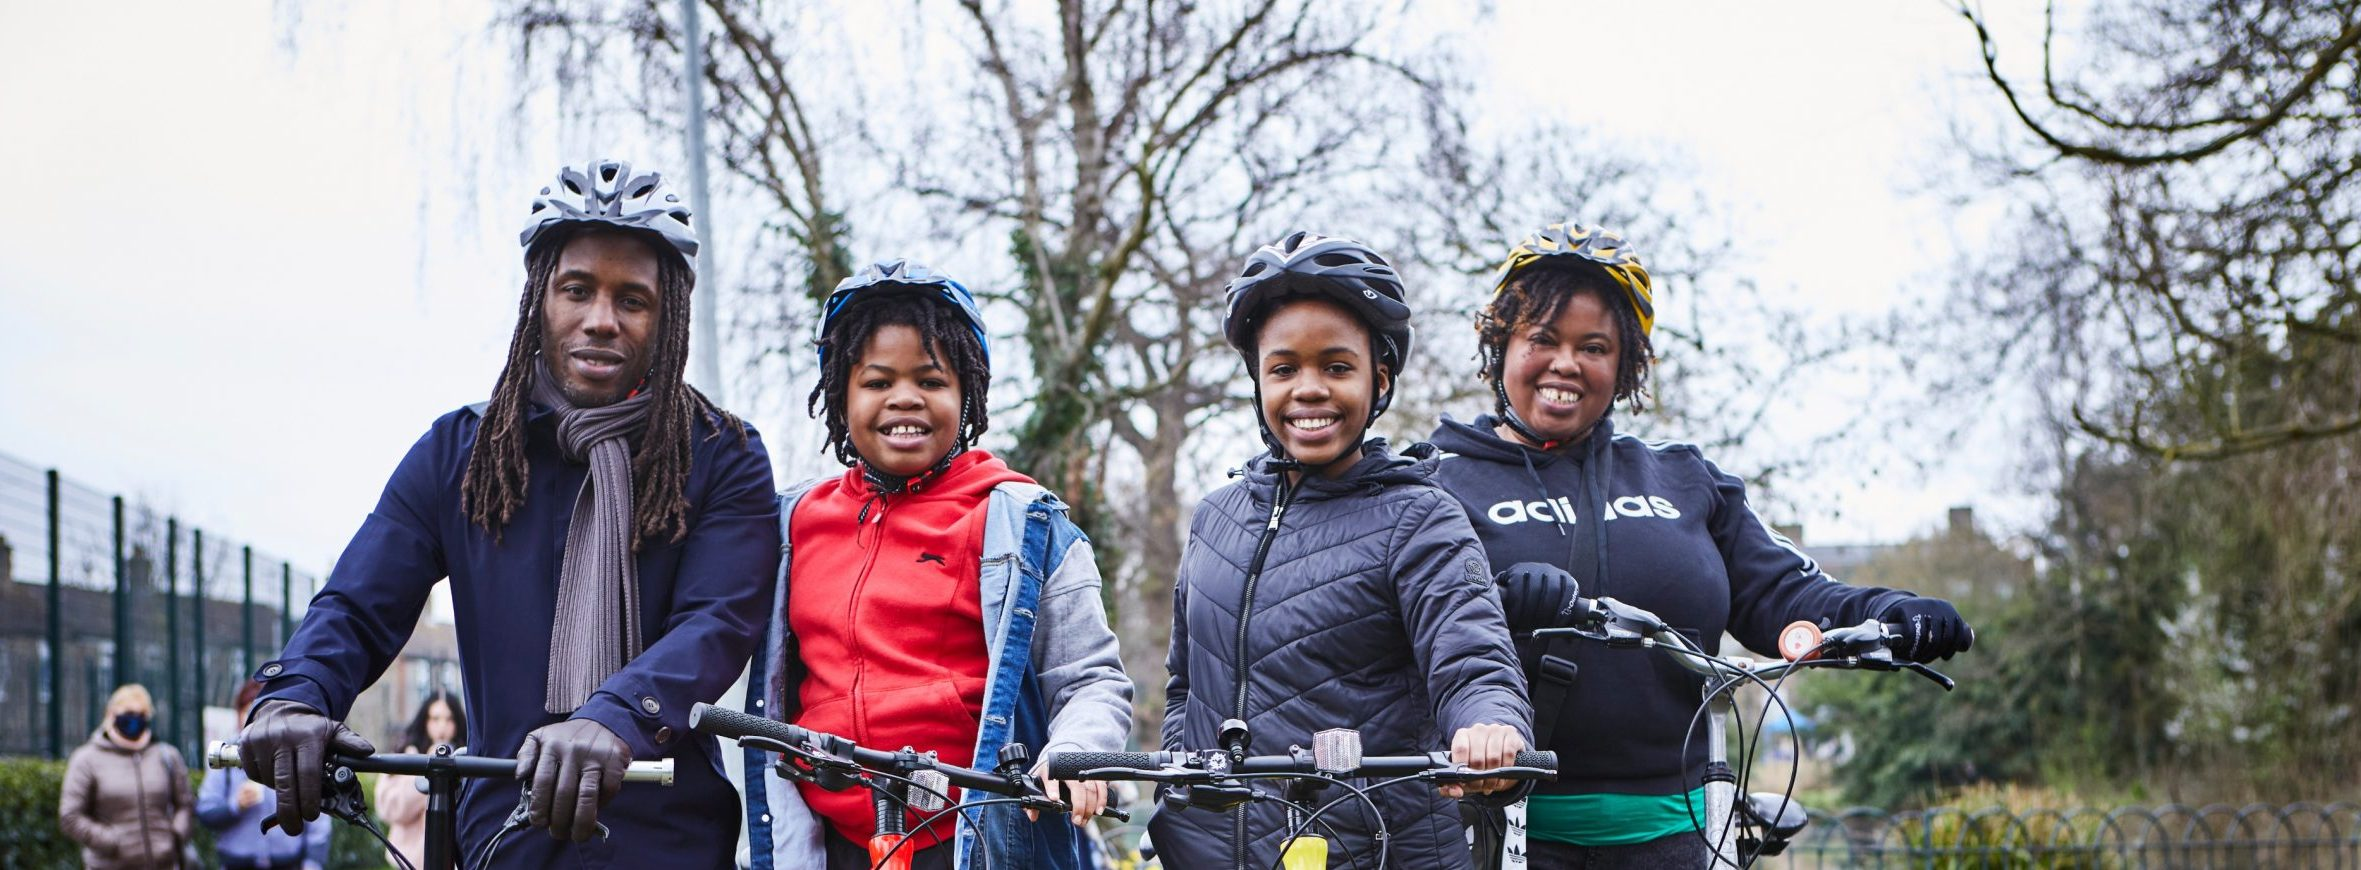 cycling lessons near me